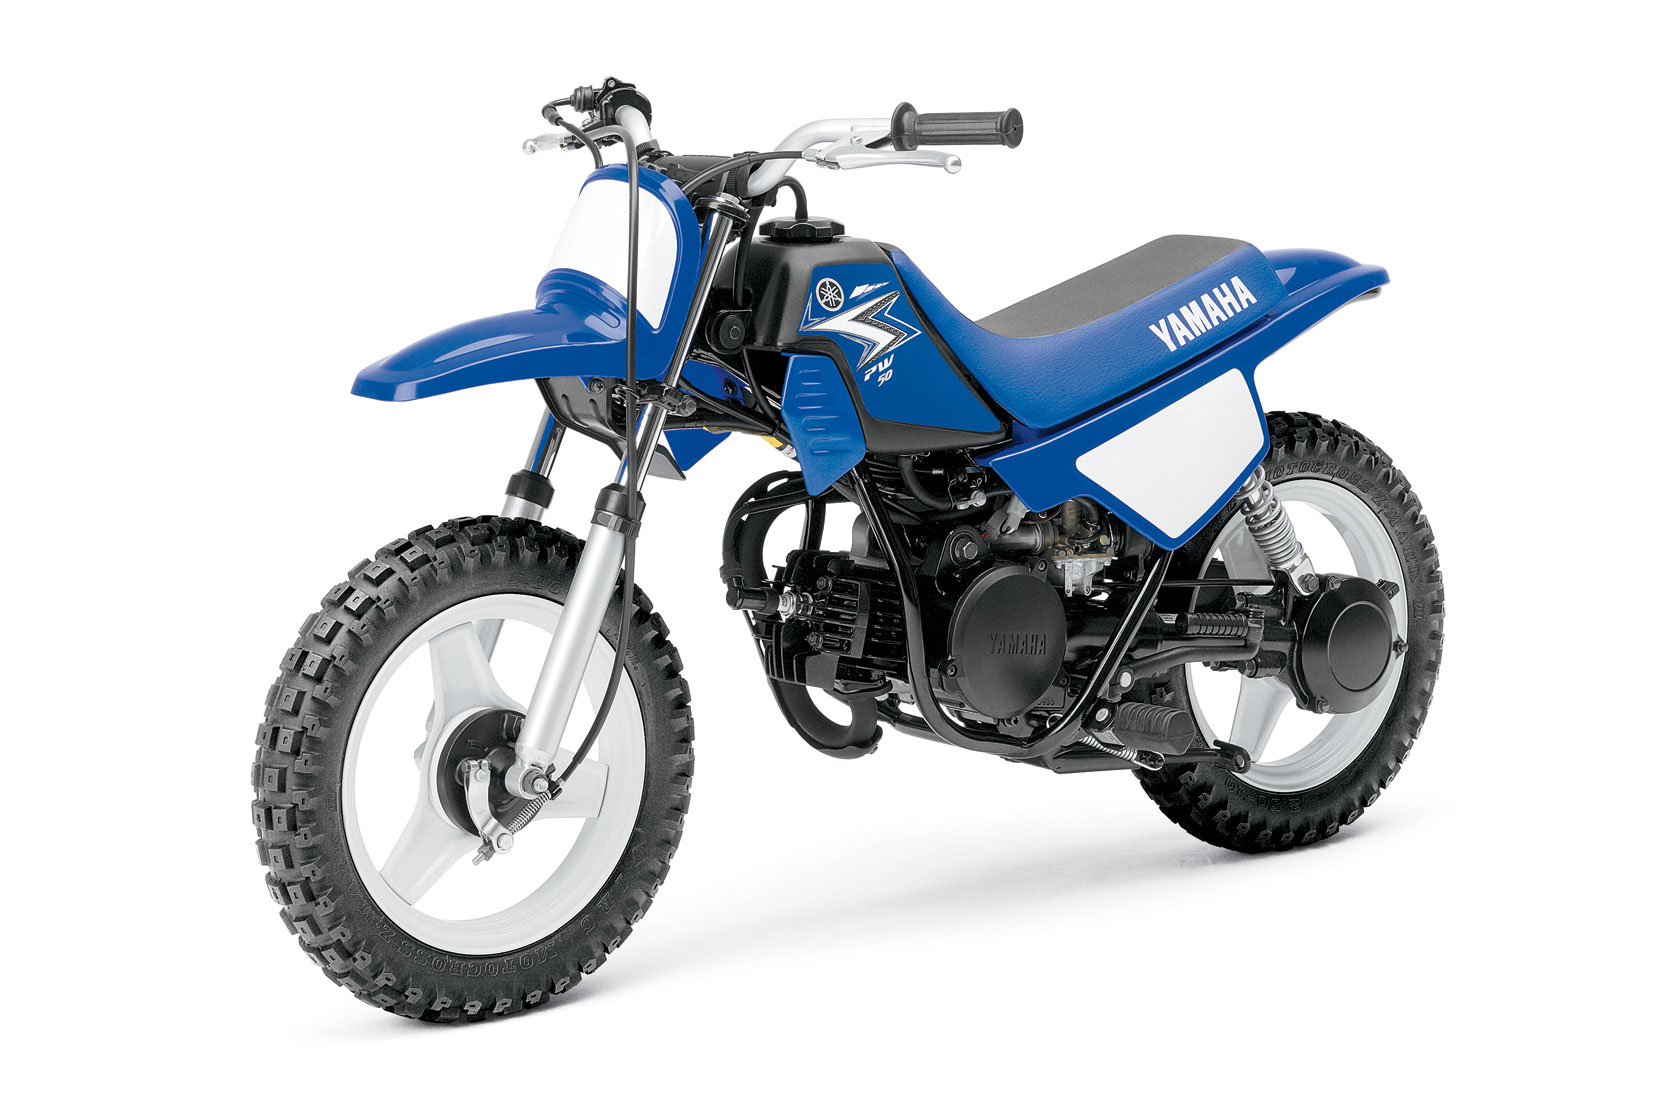 2012 Yamaha PW50 2-Stroke Review